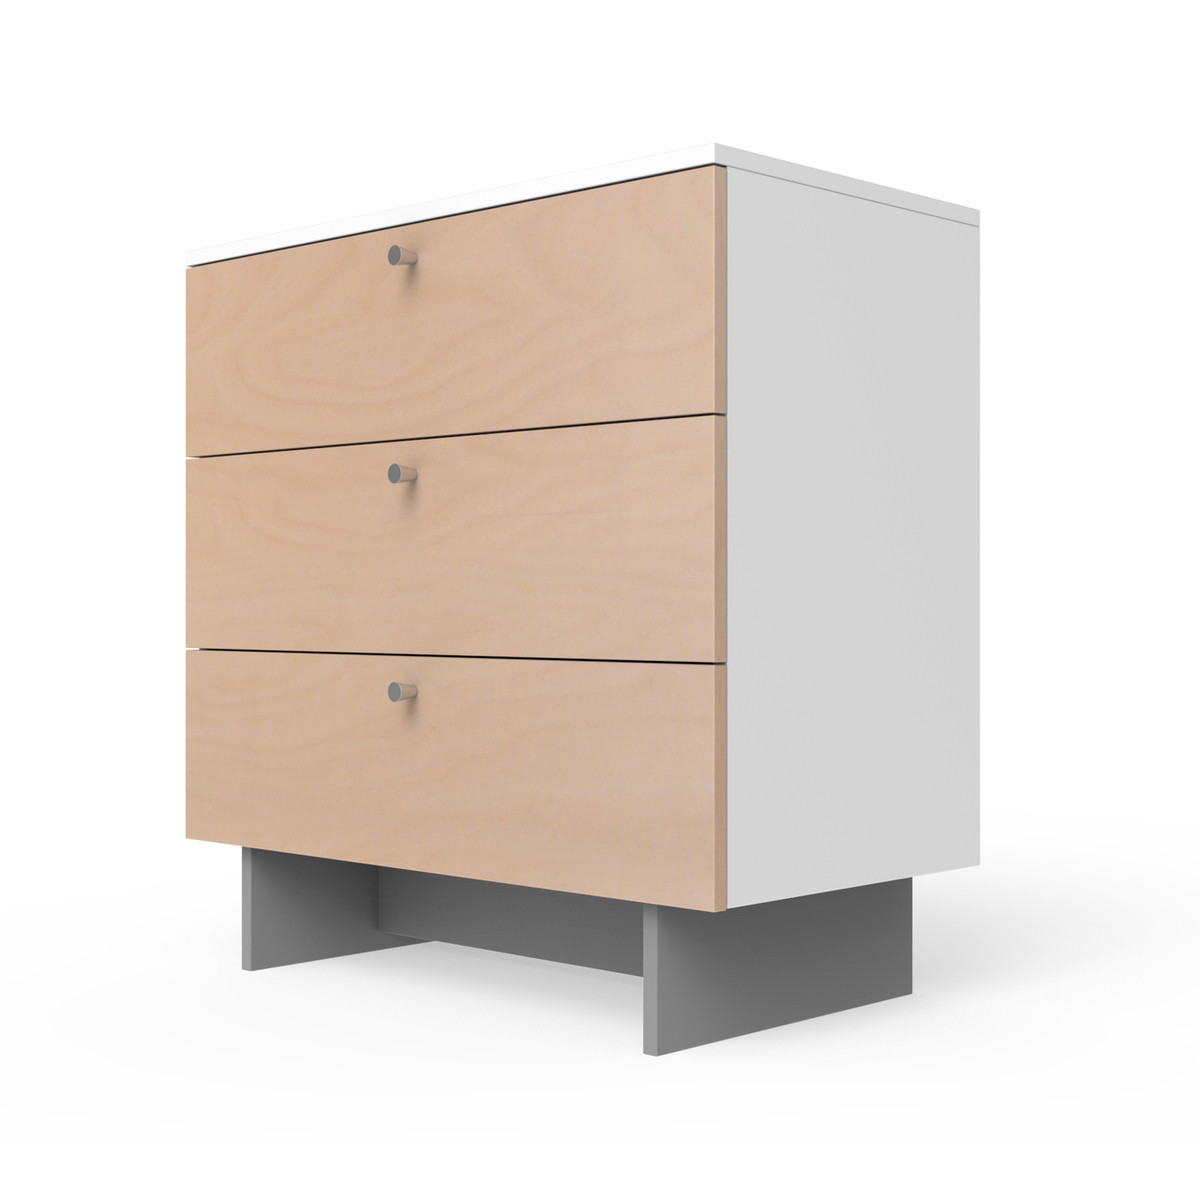 "Roh 34"" Dresser in Birch with Conical Pulls"